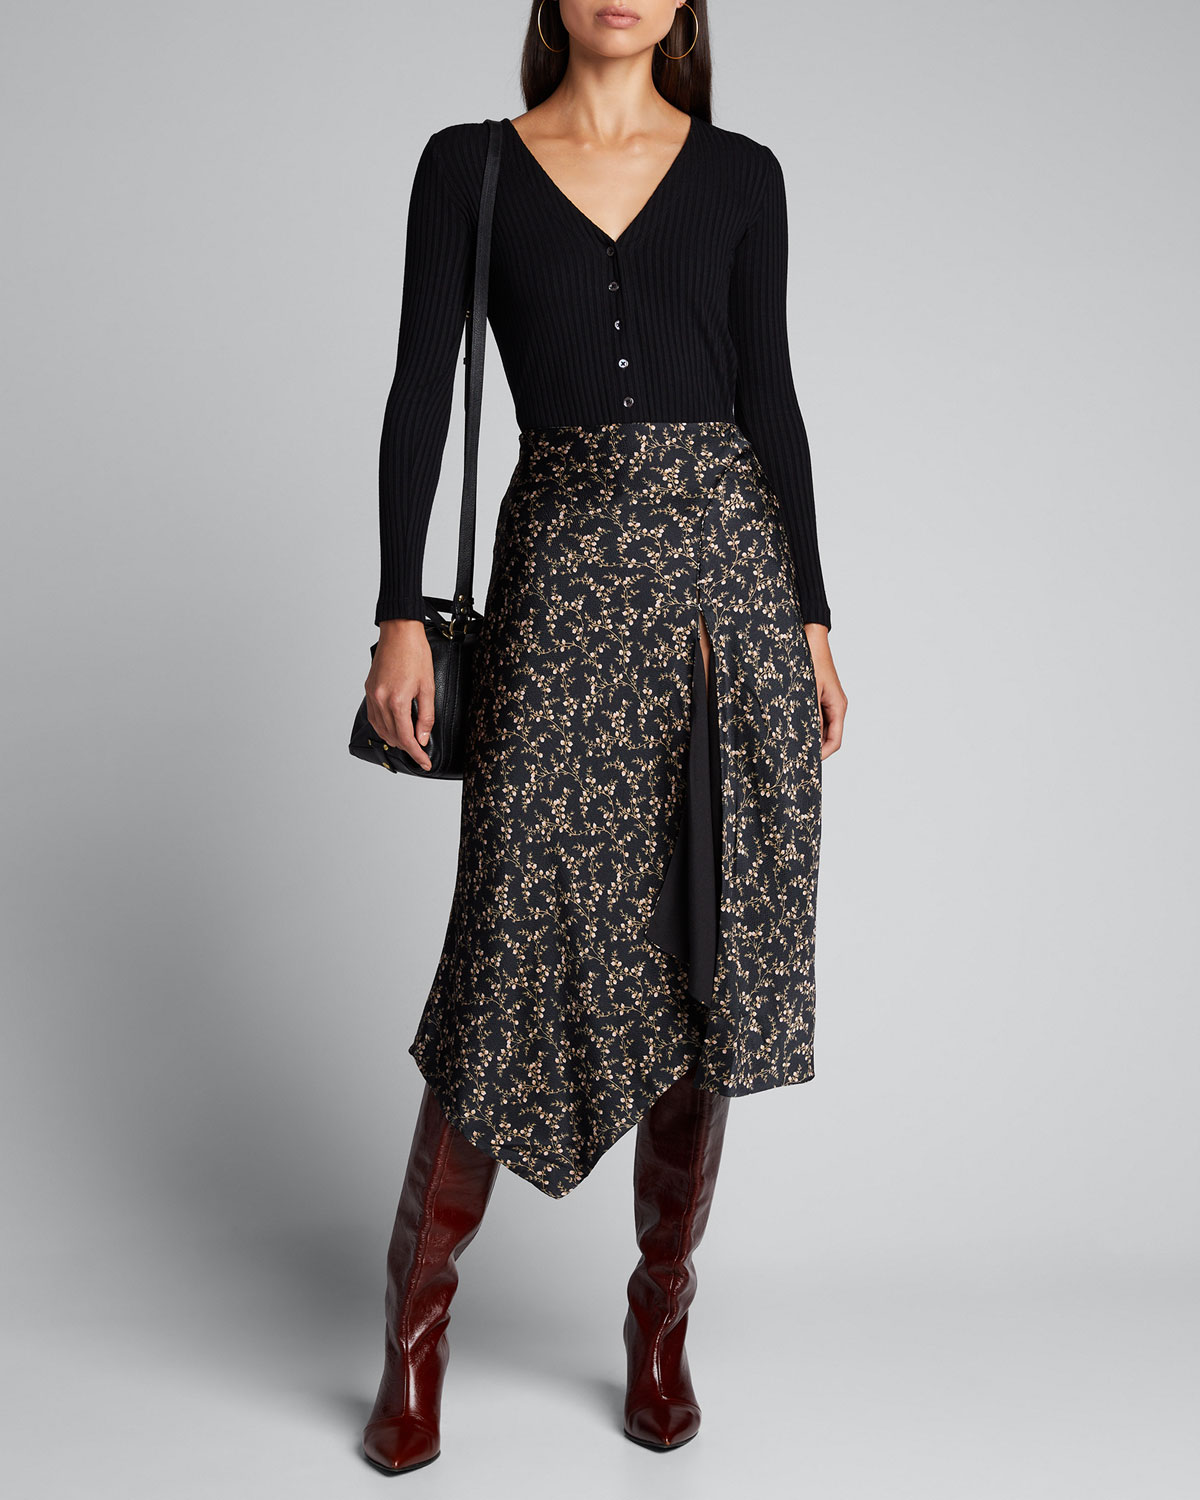 Jonathan Simkhai Skirts HAMMERED SILK HANDKERCHIEF SKIRT